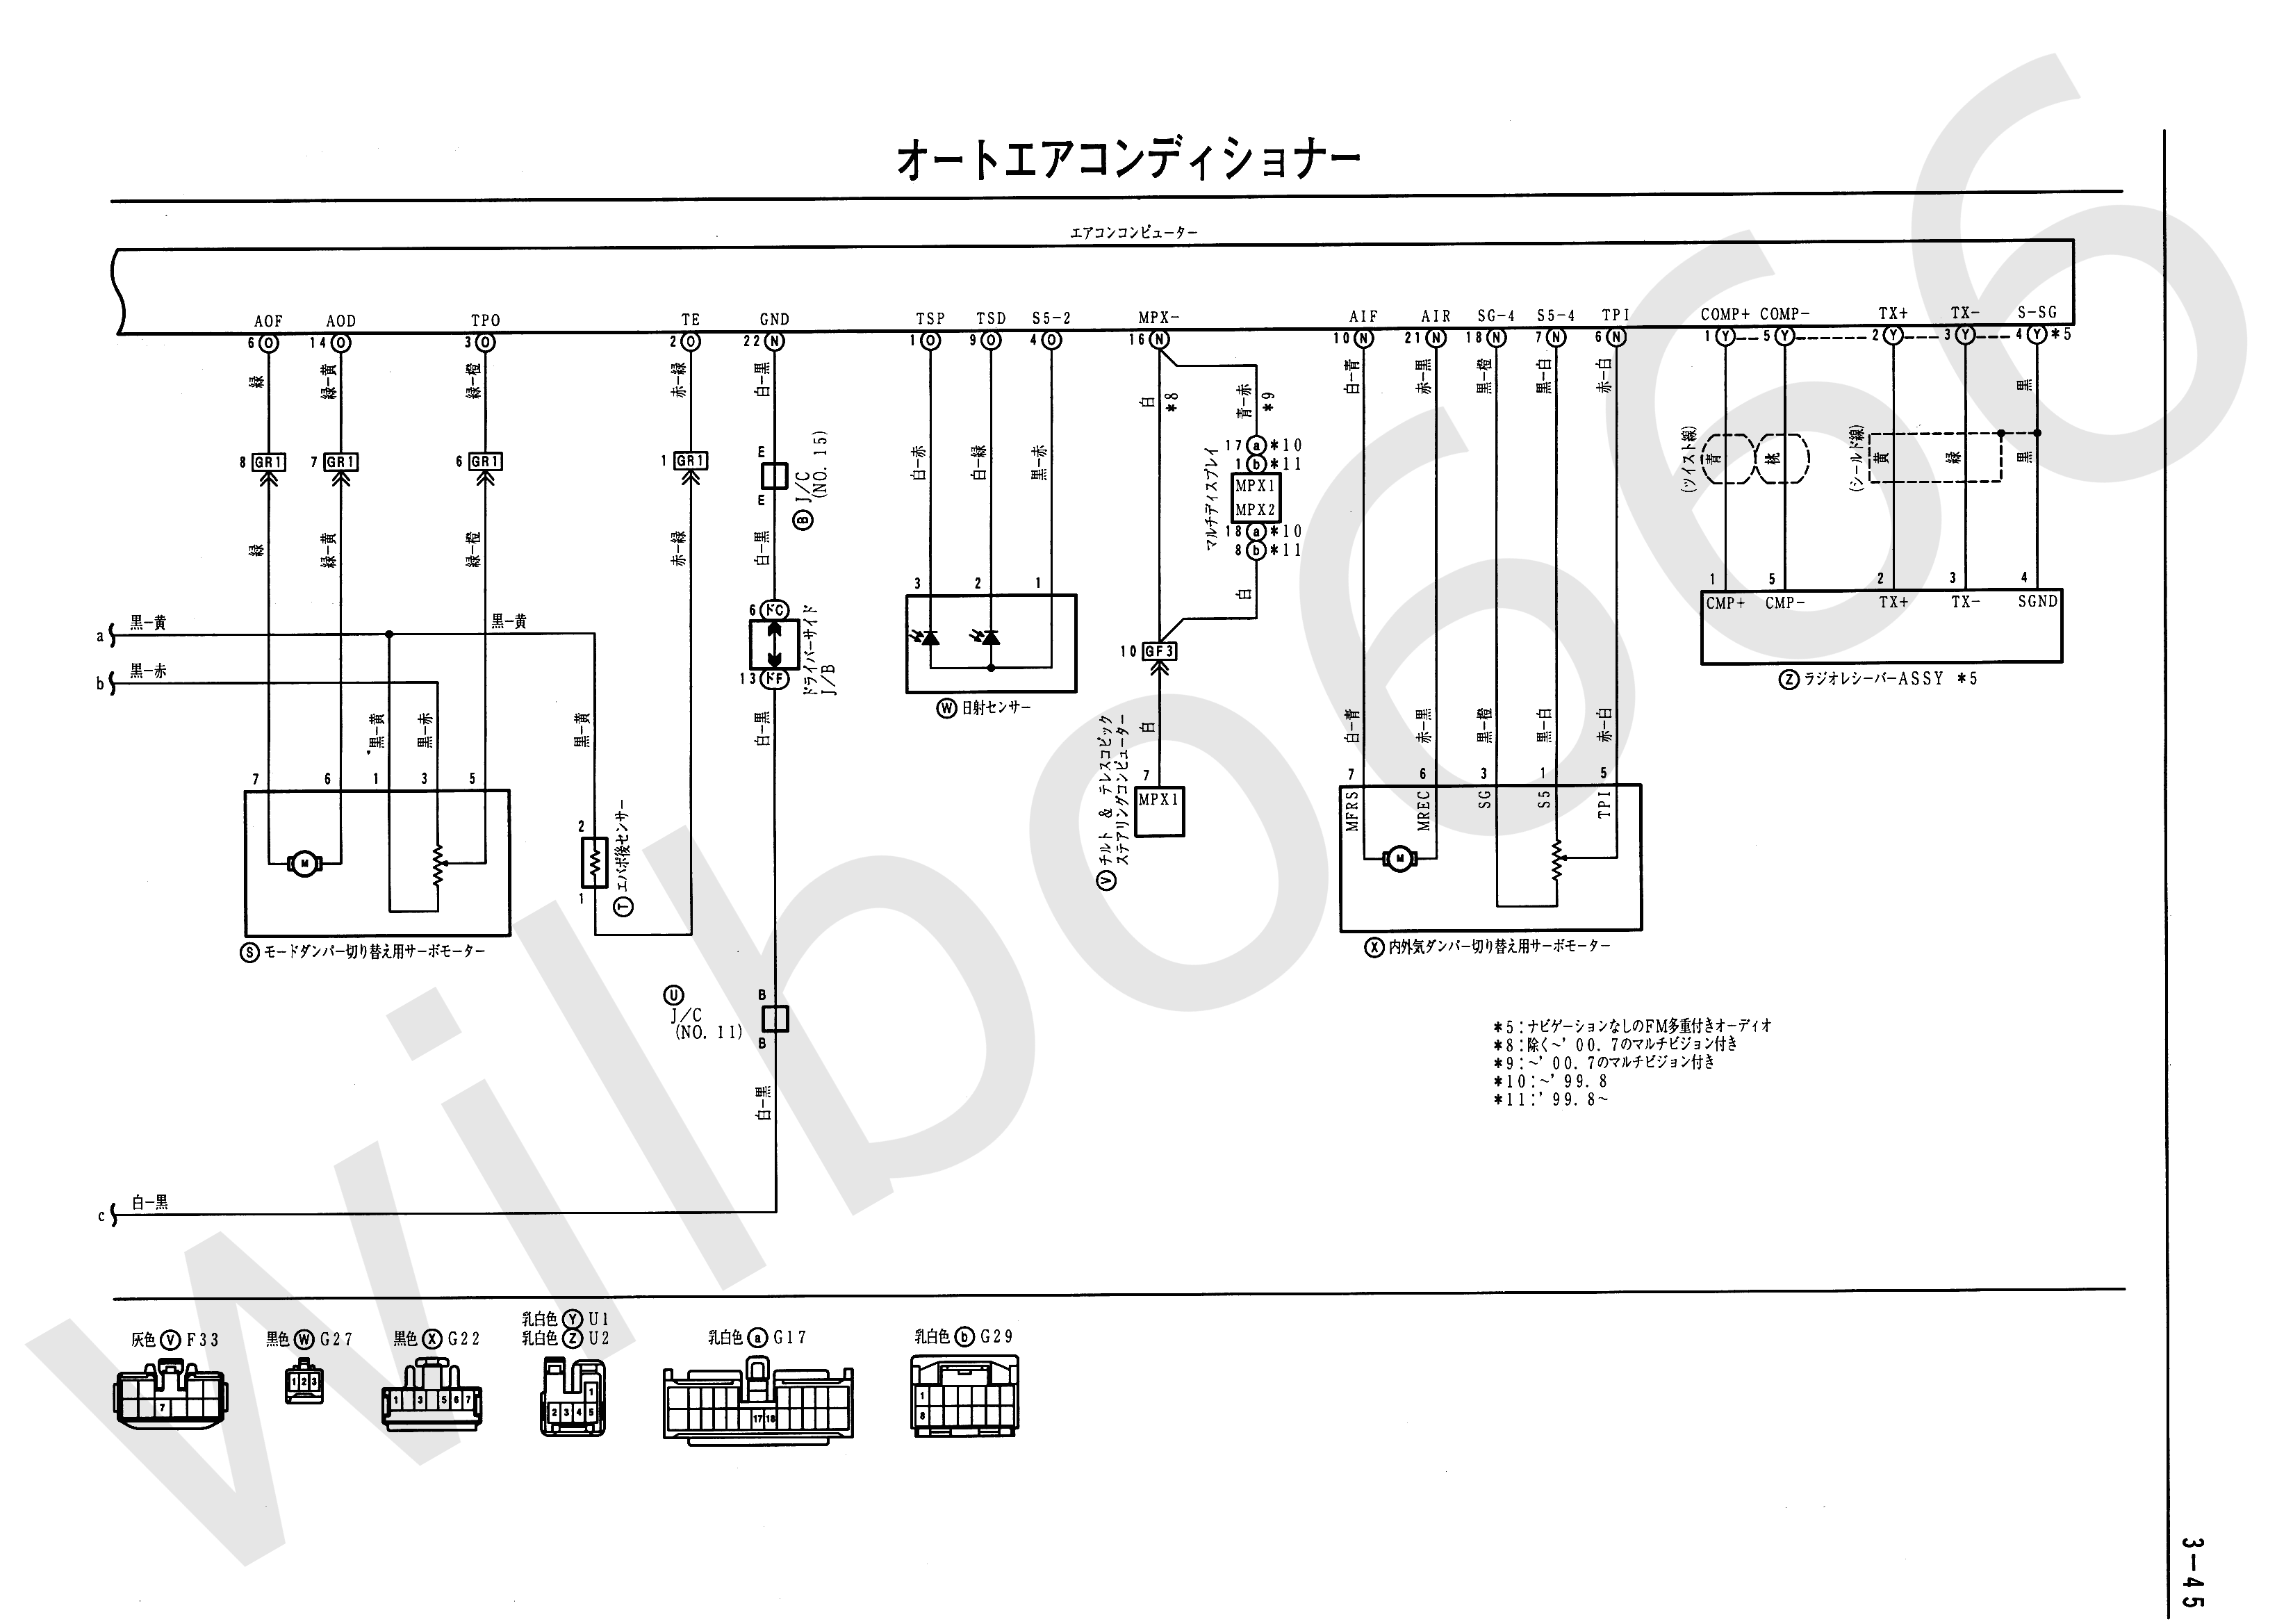 JZS161 Electrical Wiring Diagram 6748505 3 45?resize\\=3300%2C2337 rough house 50cc scooter wiring diagram kymco scooter parts 50Cc Scooter Stator Wiring Diagram at suagrazia.org